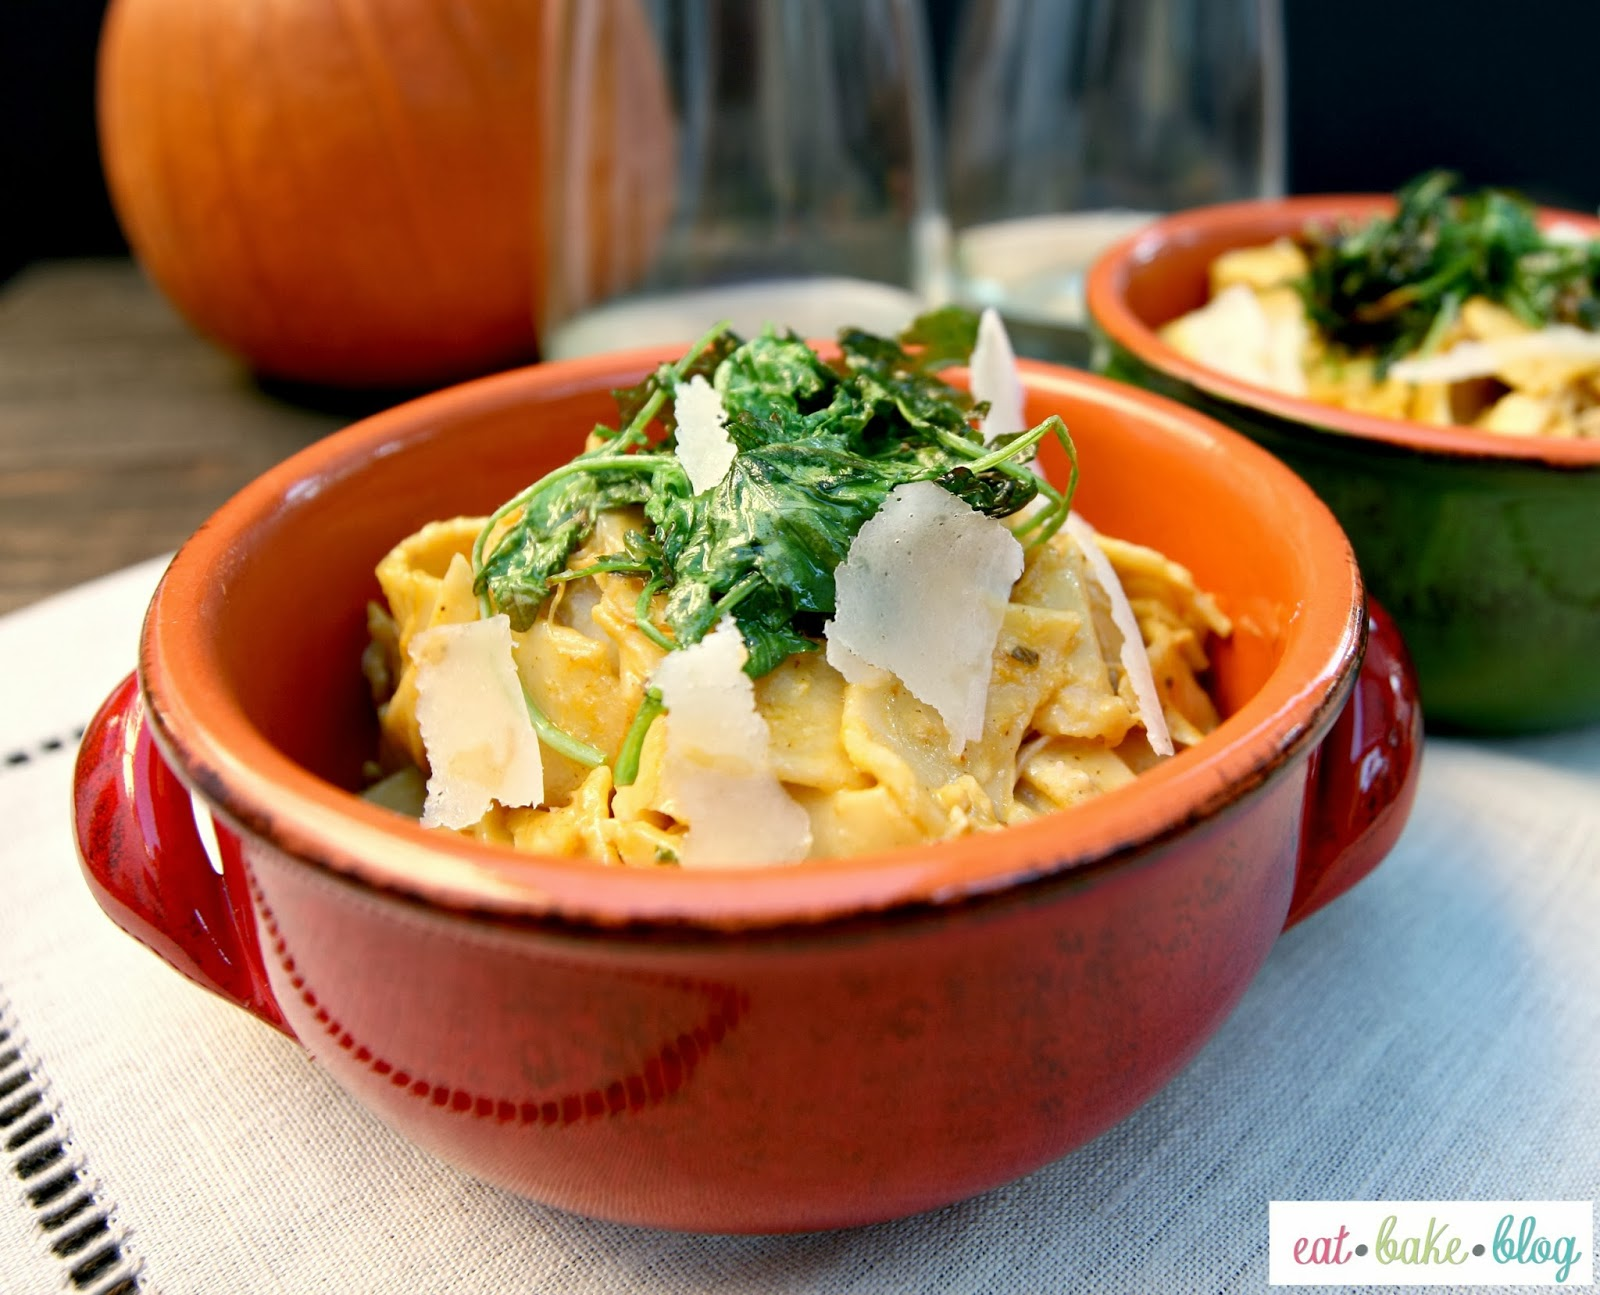 ... Blog.: Creamy Pumpkin Pappardelle With Braised Chicken And Crispy Kale